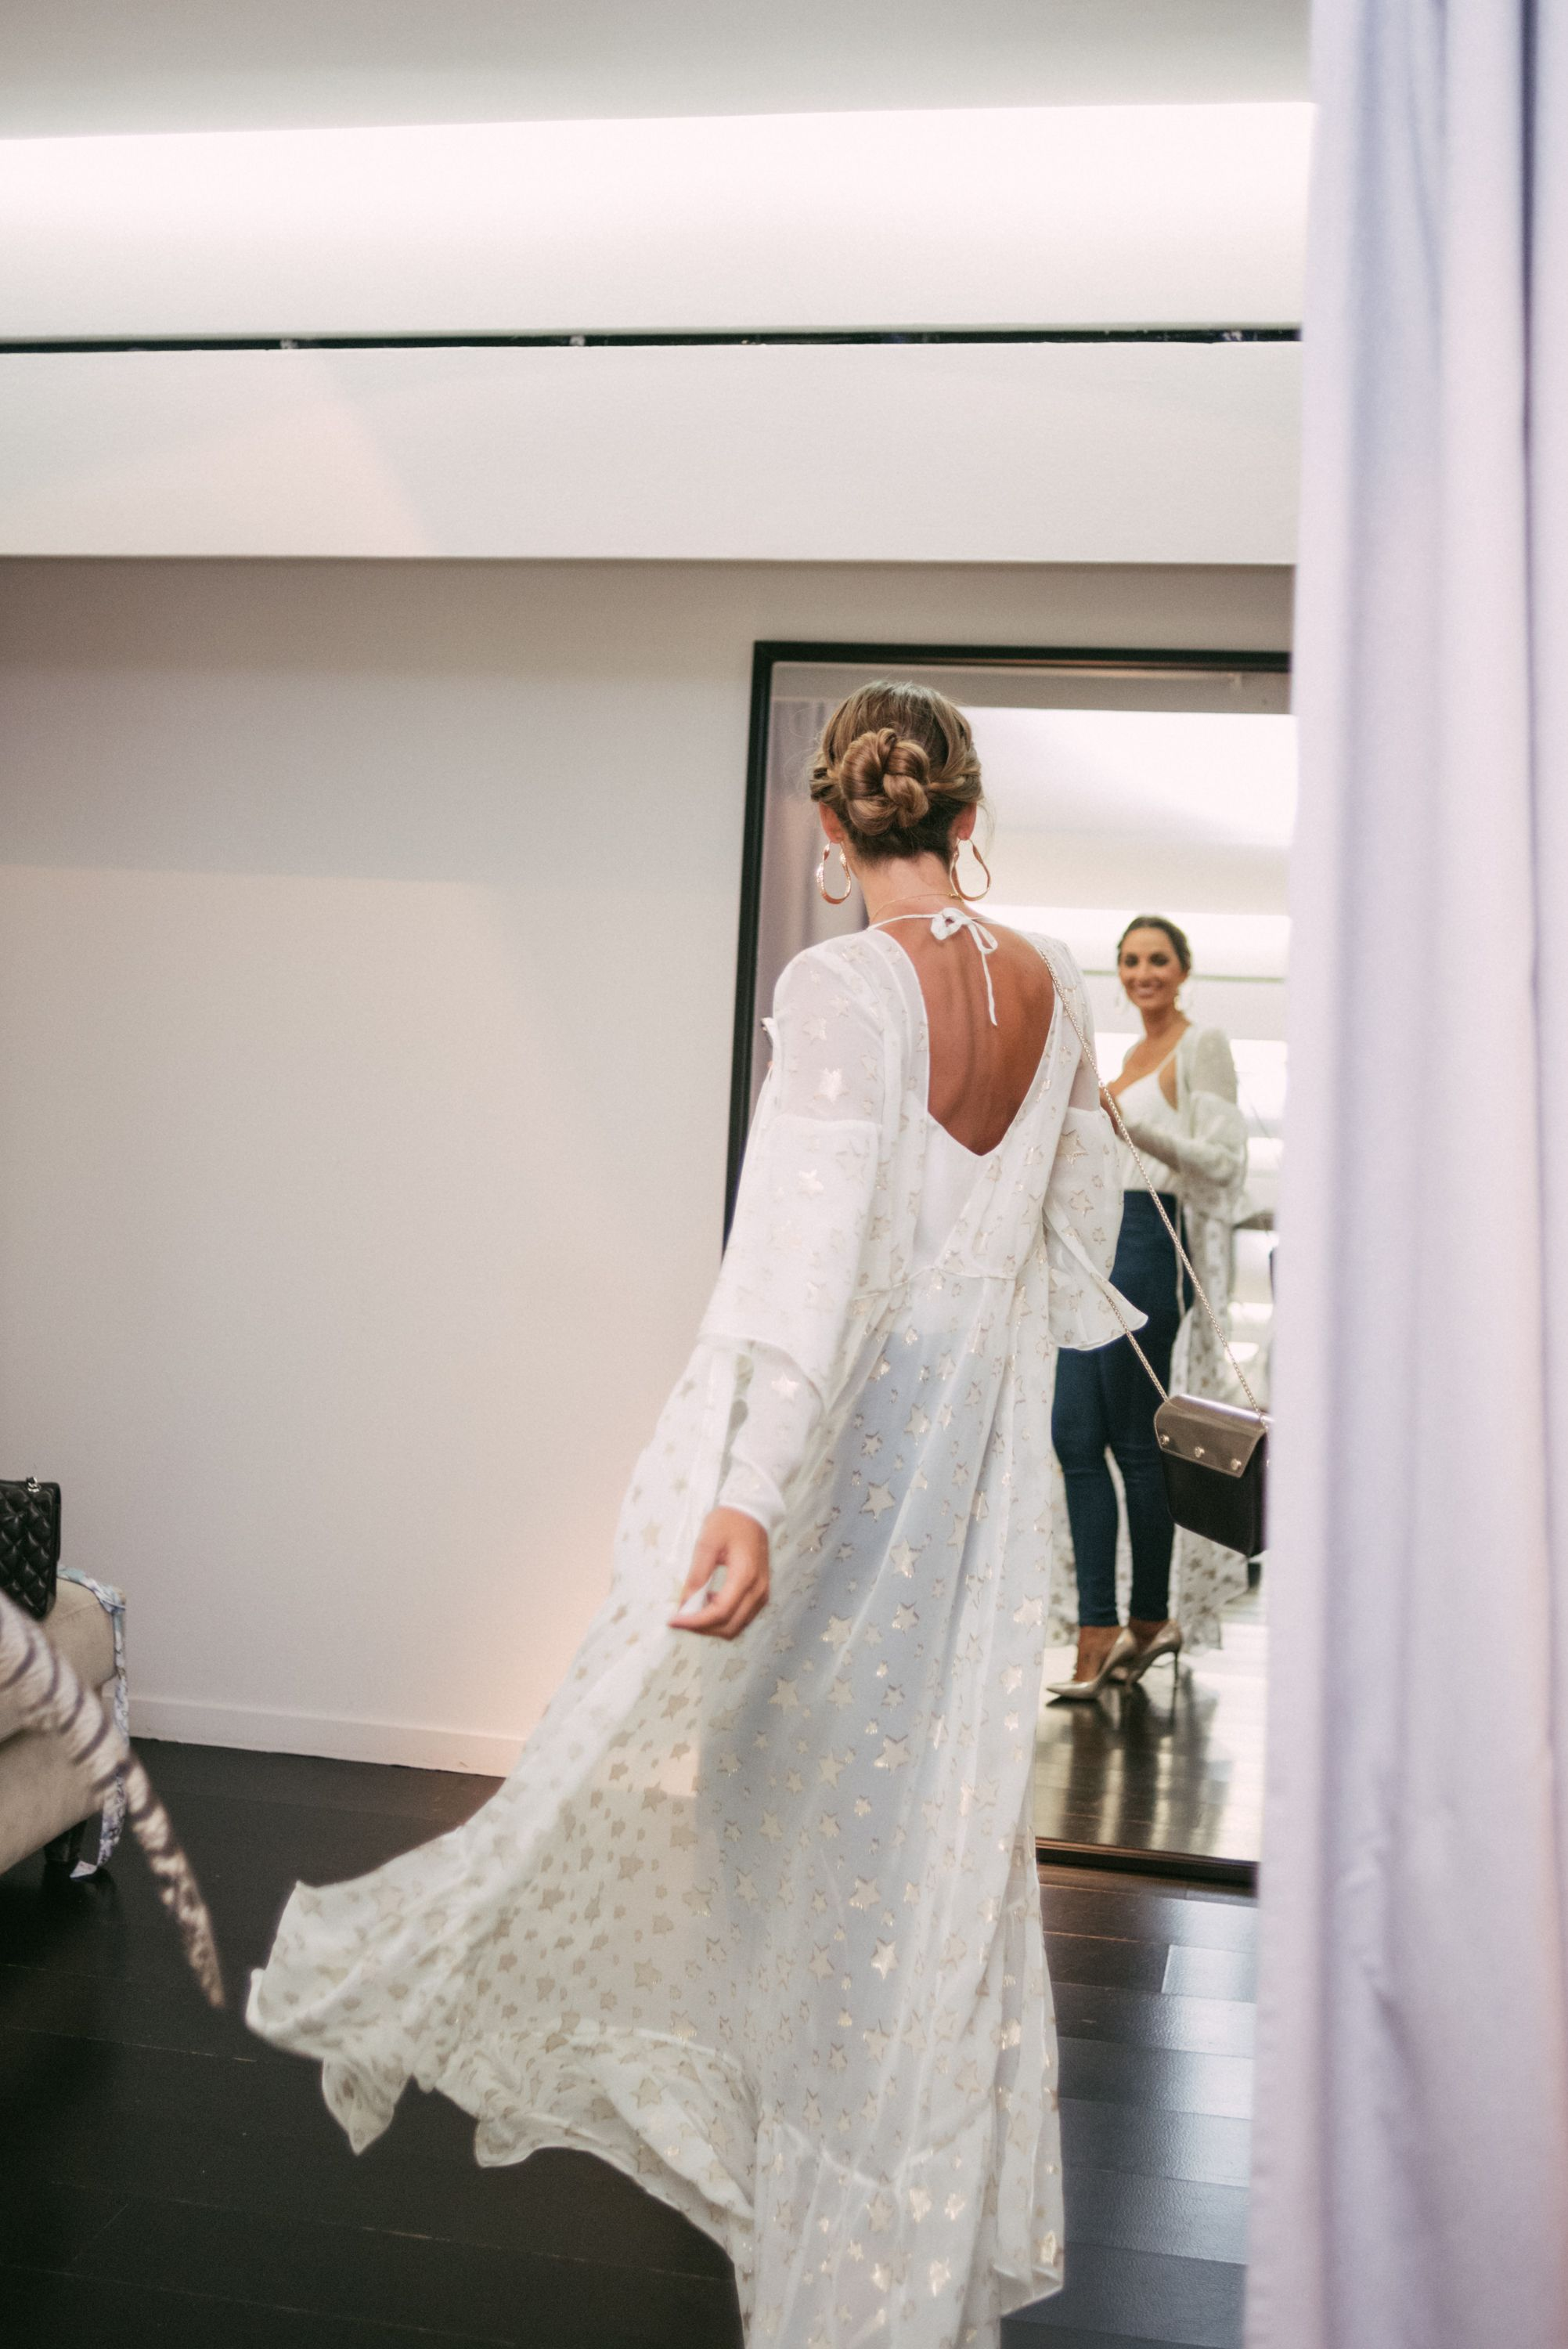 Pin by tanuca on bride hair pinterest perfect wedding wedding